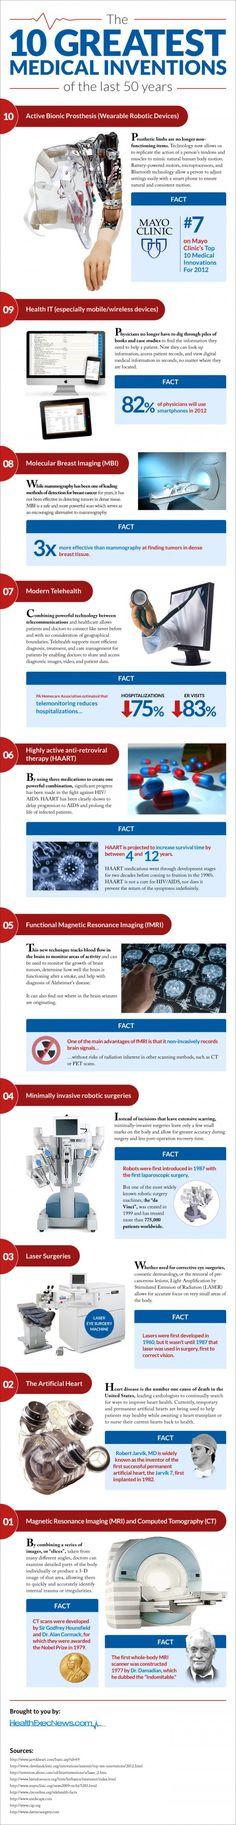 The 10 greatest medical inventions #infografia #infographic #health